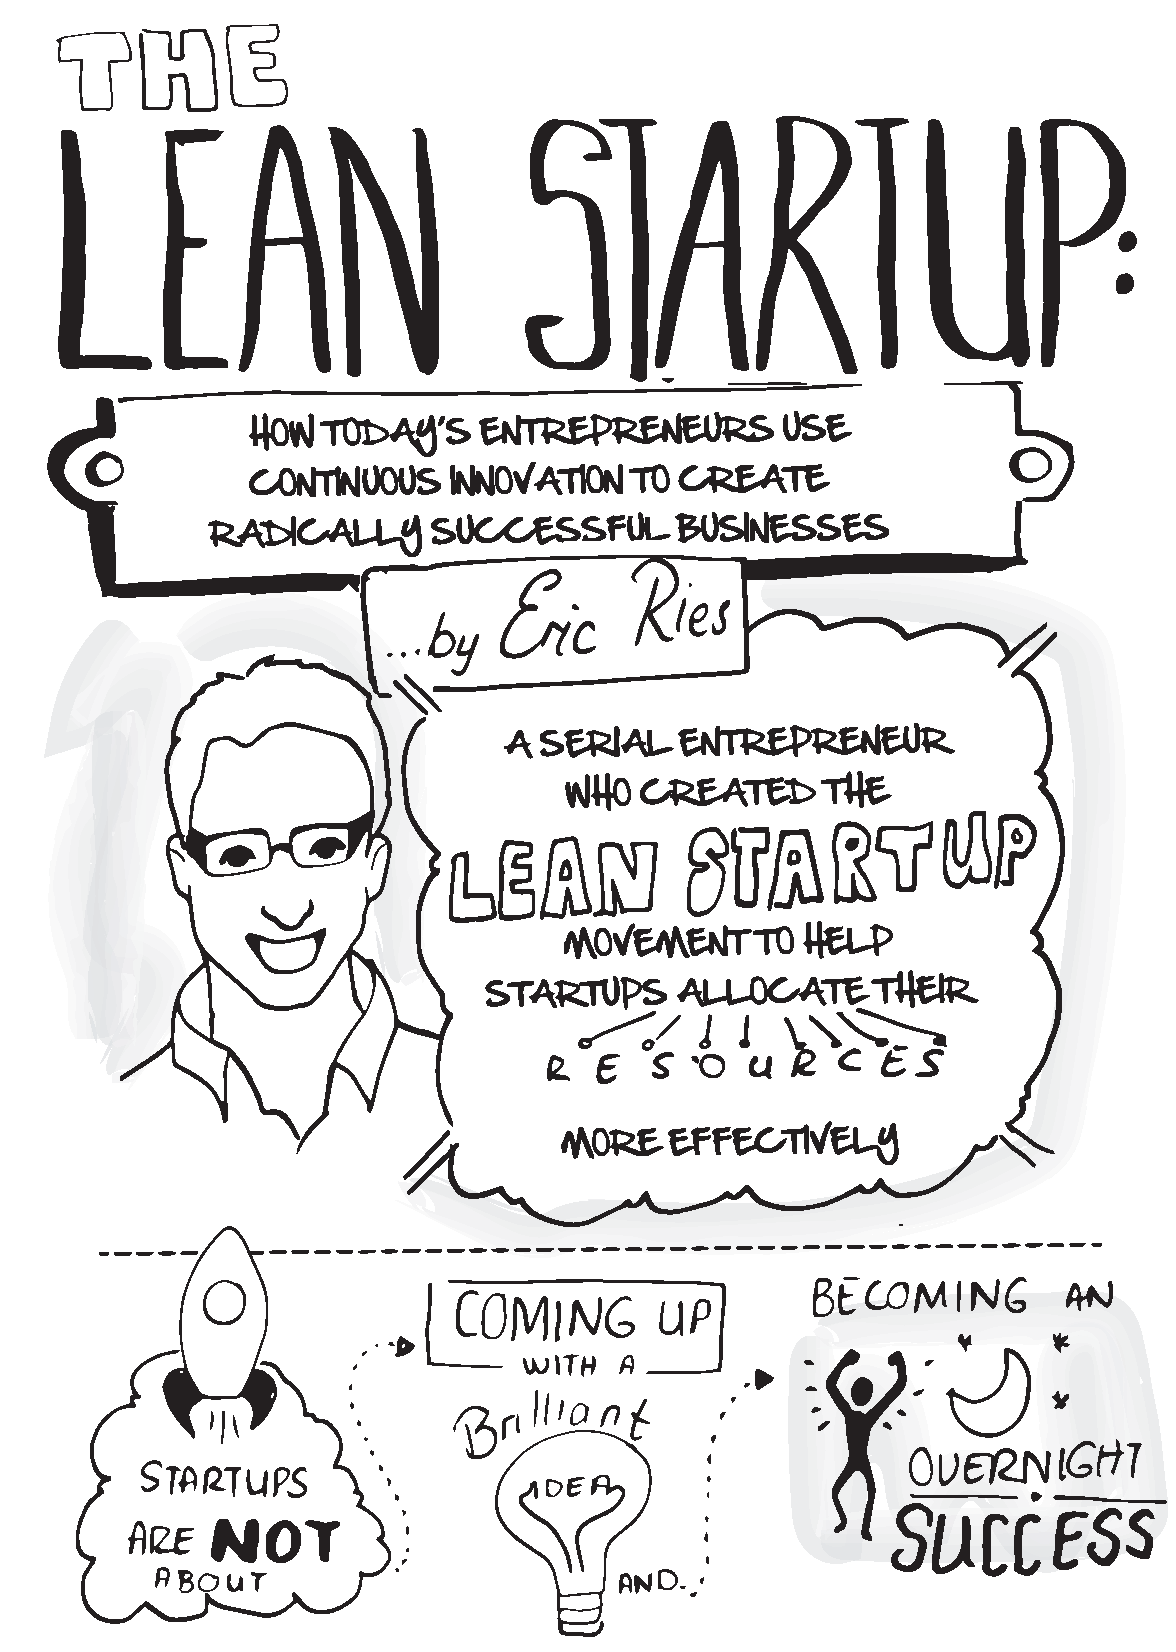 The Lean Startup: how today's entrepreneurs use continuous innovation to create  radically successful businesses… by Eric Ries, a serial entrepreneur who ...